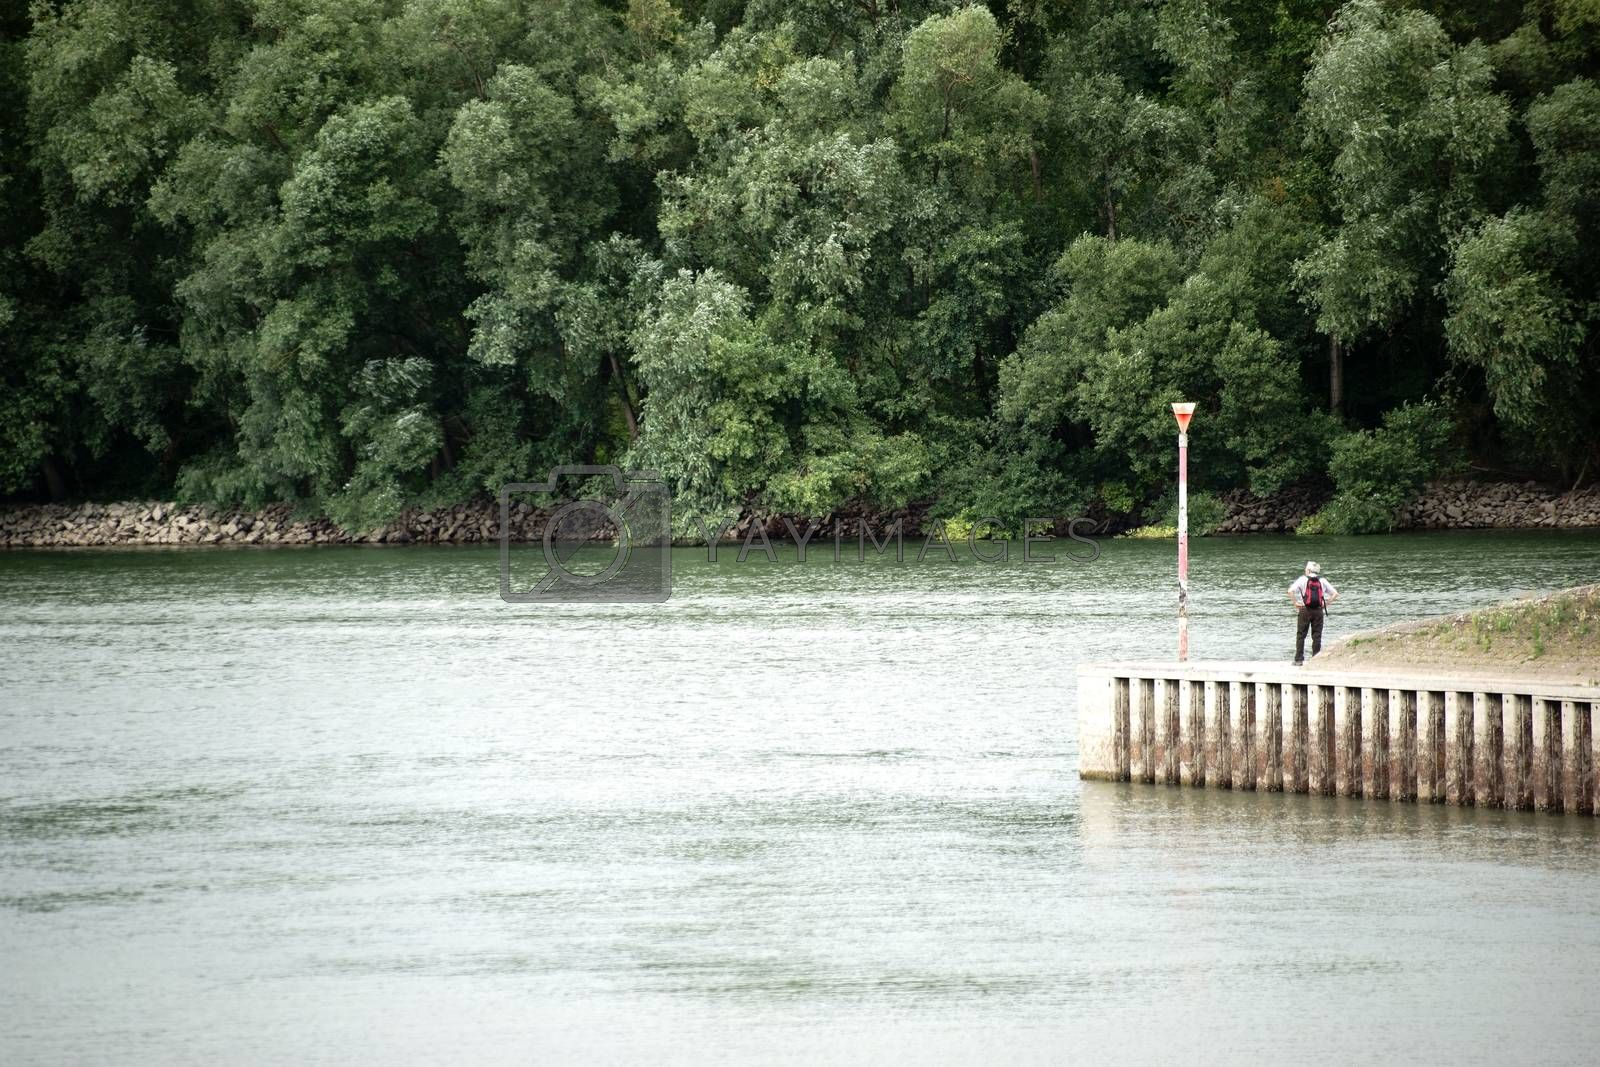 A hiker looks on the waters of the river Rhine and seems to be small in contrast to the surrounding.